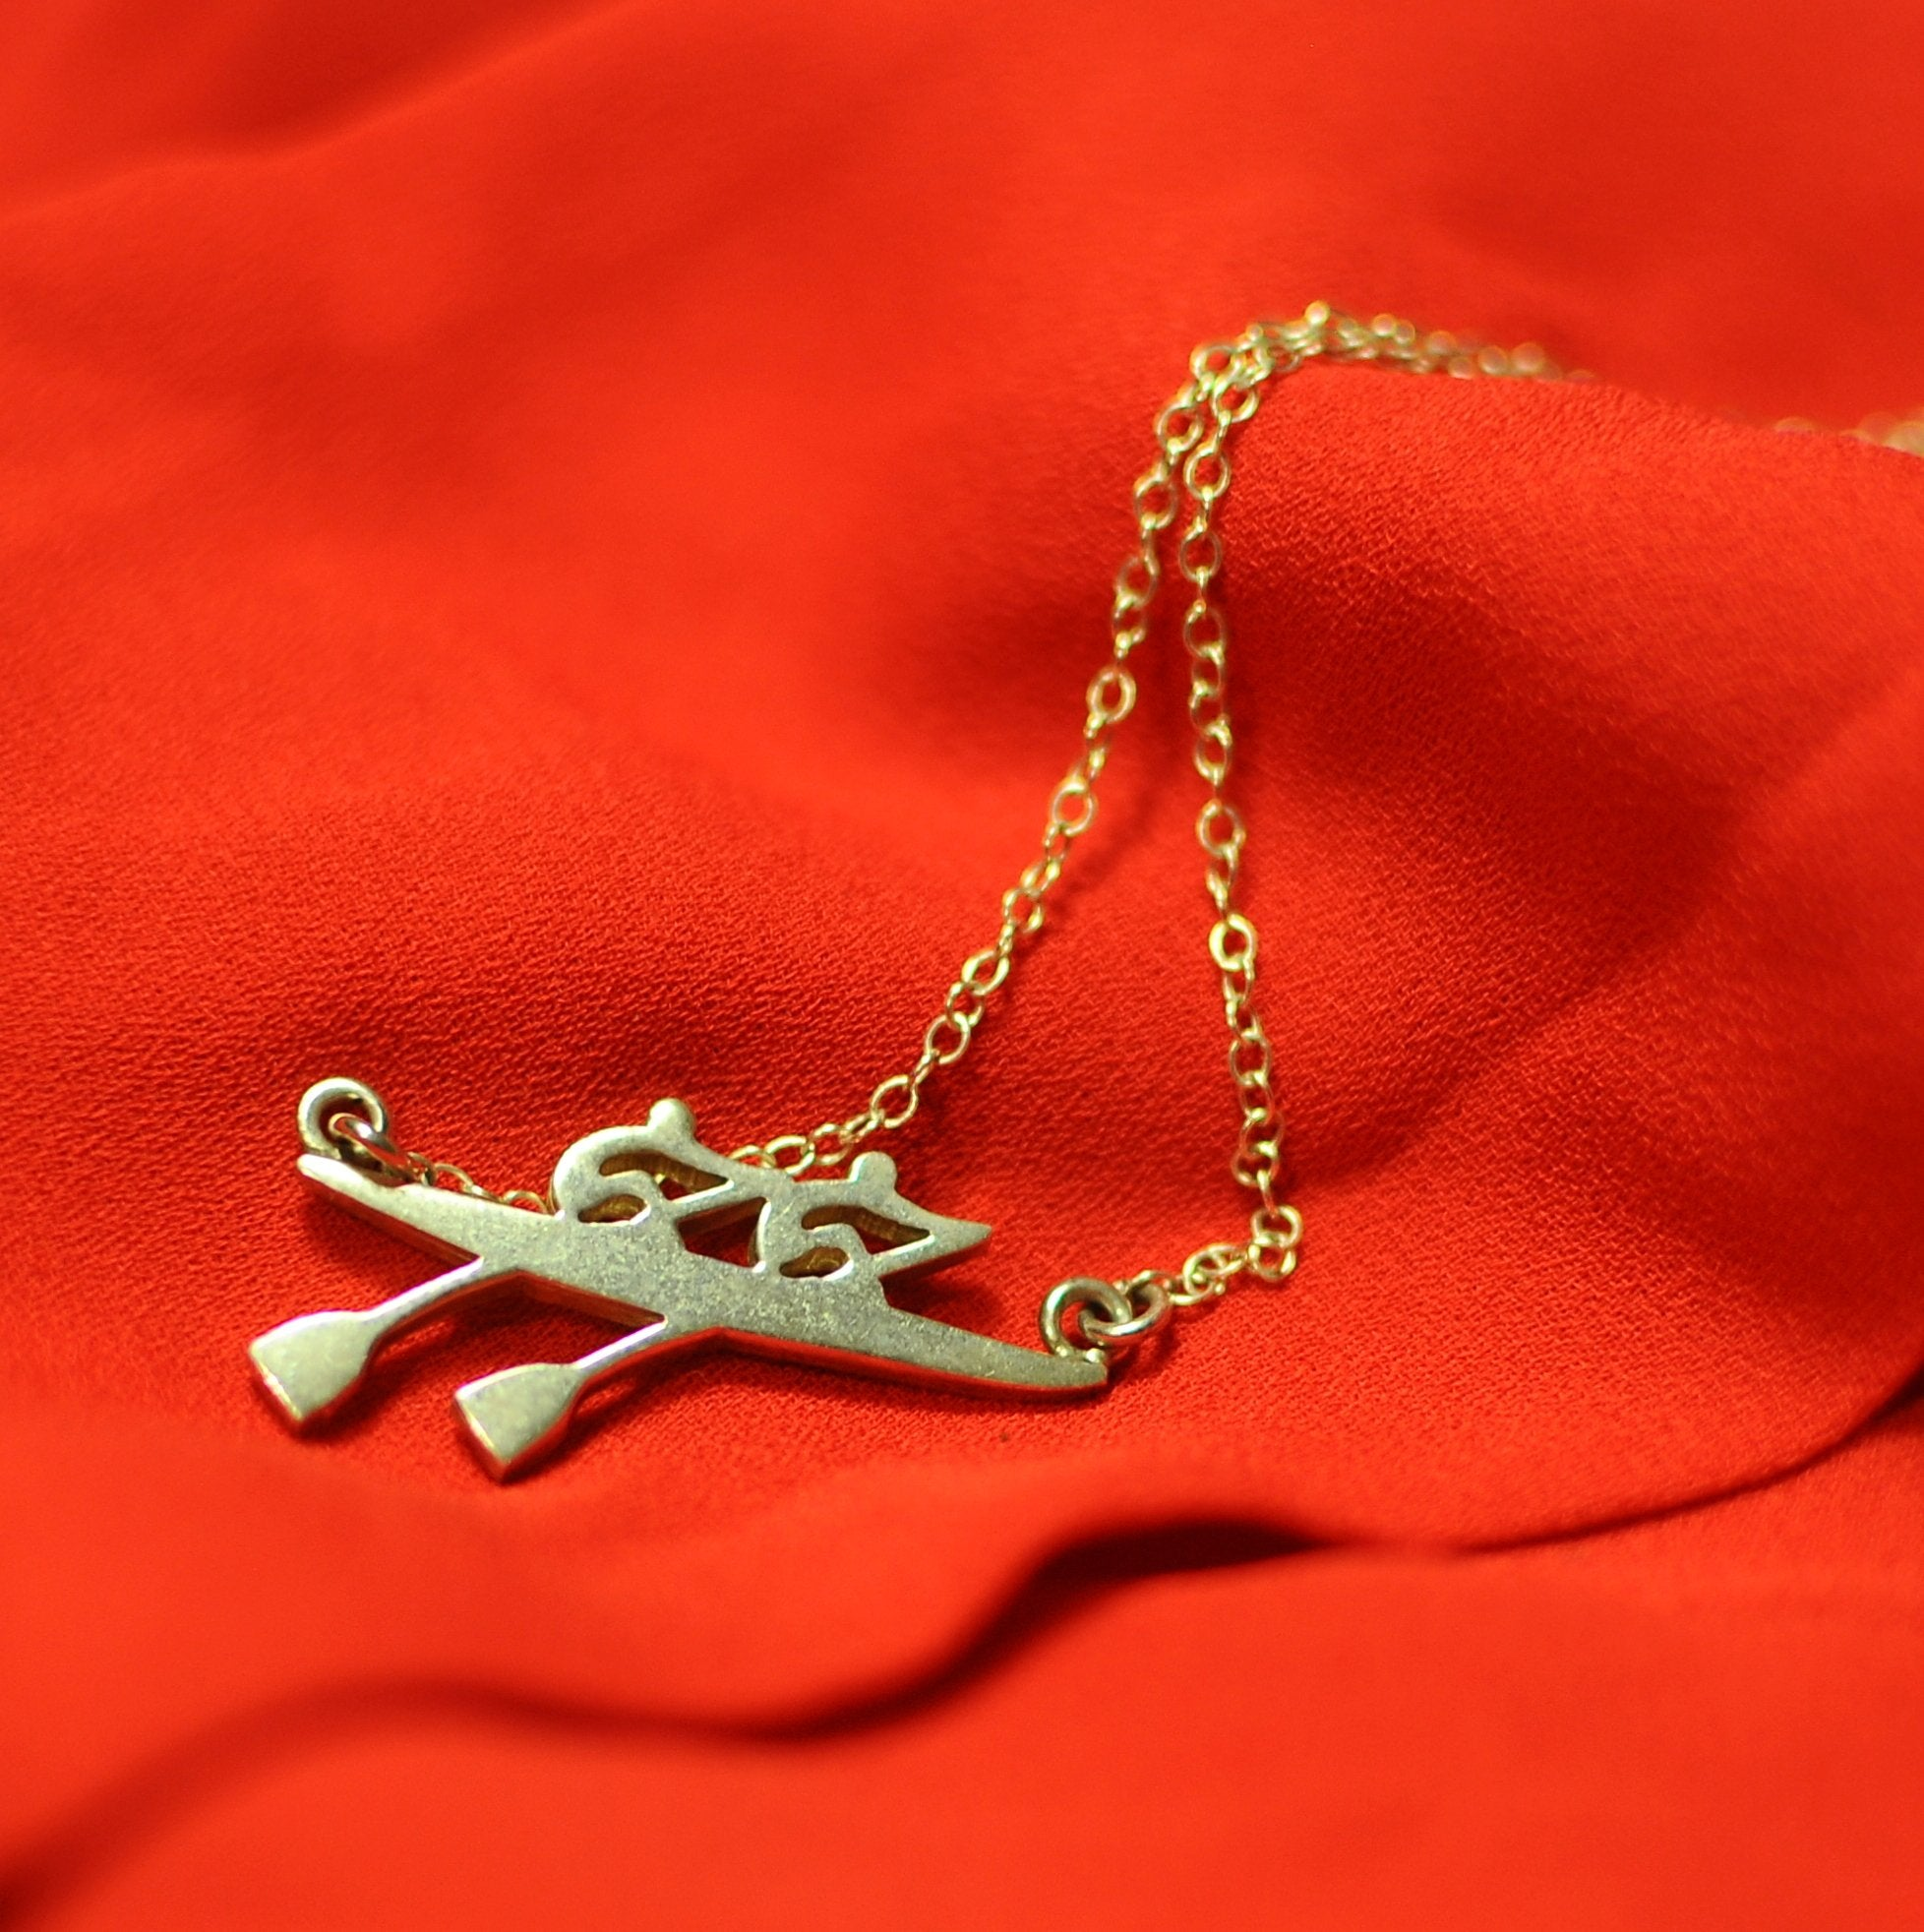 rowing pendant and rowing necklaces by strokeside designs Australia rowing jewellery